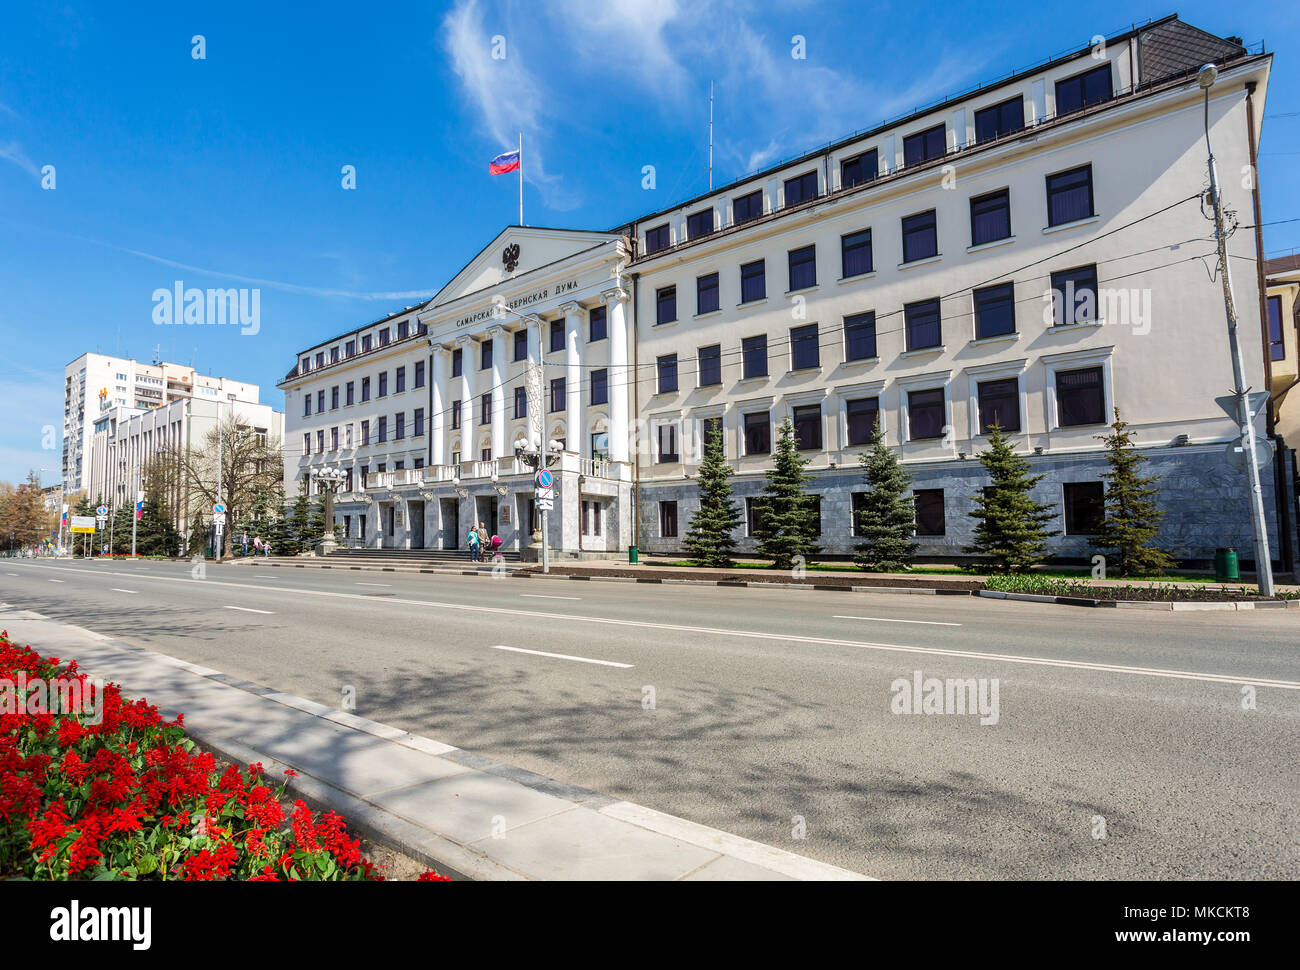 Reconstruction of the historical center of Samara started